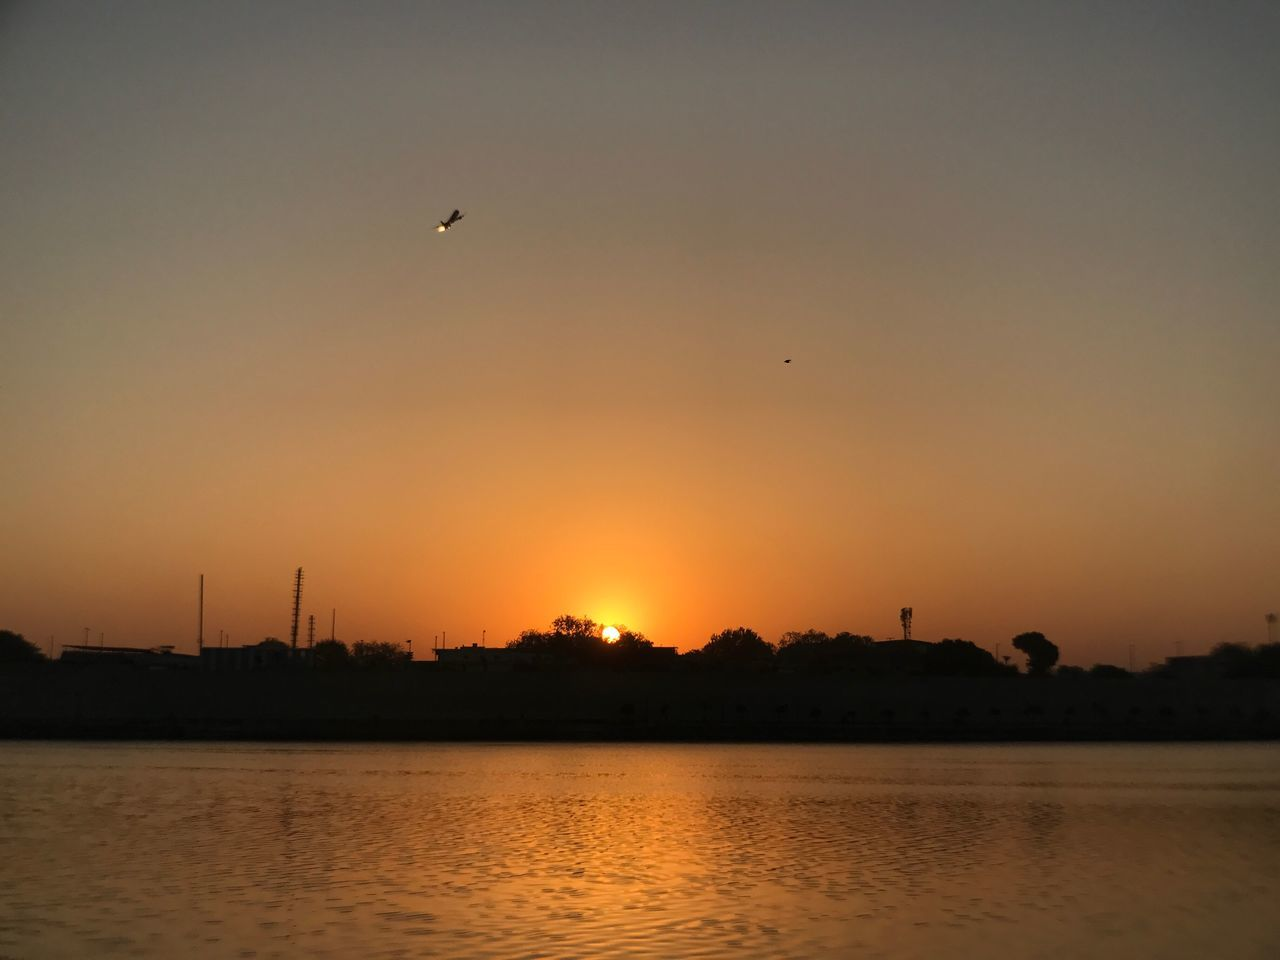 sunset, flying, bird, water, silhouette, orange color, nature, animals in the wild, beauty in nature, no people, waterfront, animal themes, sky, river, animal wildlife, outdoors, mid-air, scenics, one animal, architecture, built structure, travel destinations, tree, building exterior, spread wings, city, day